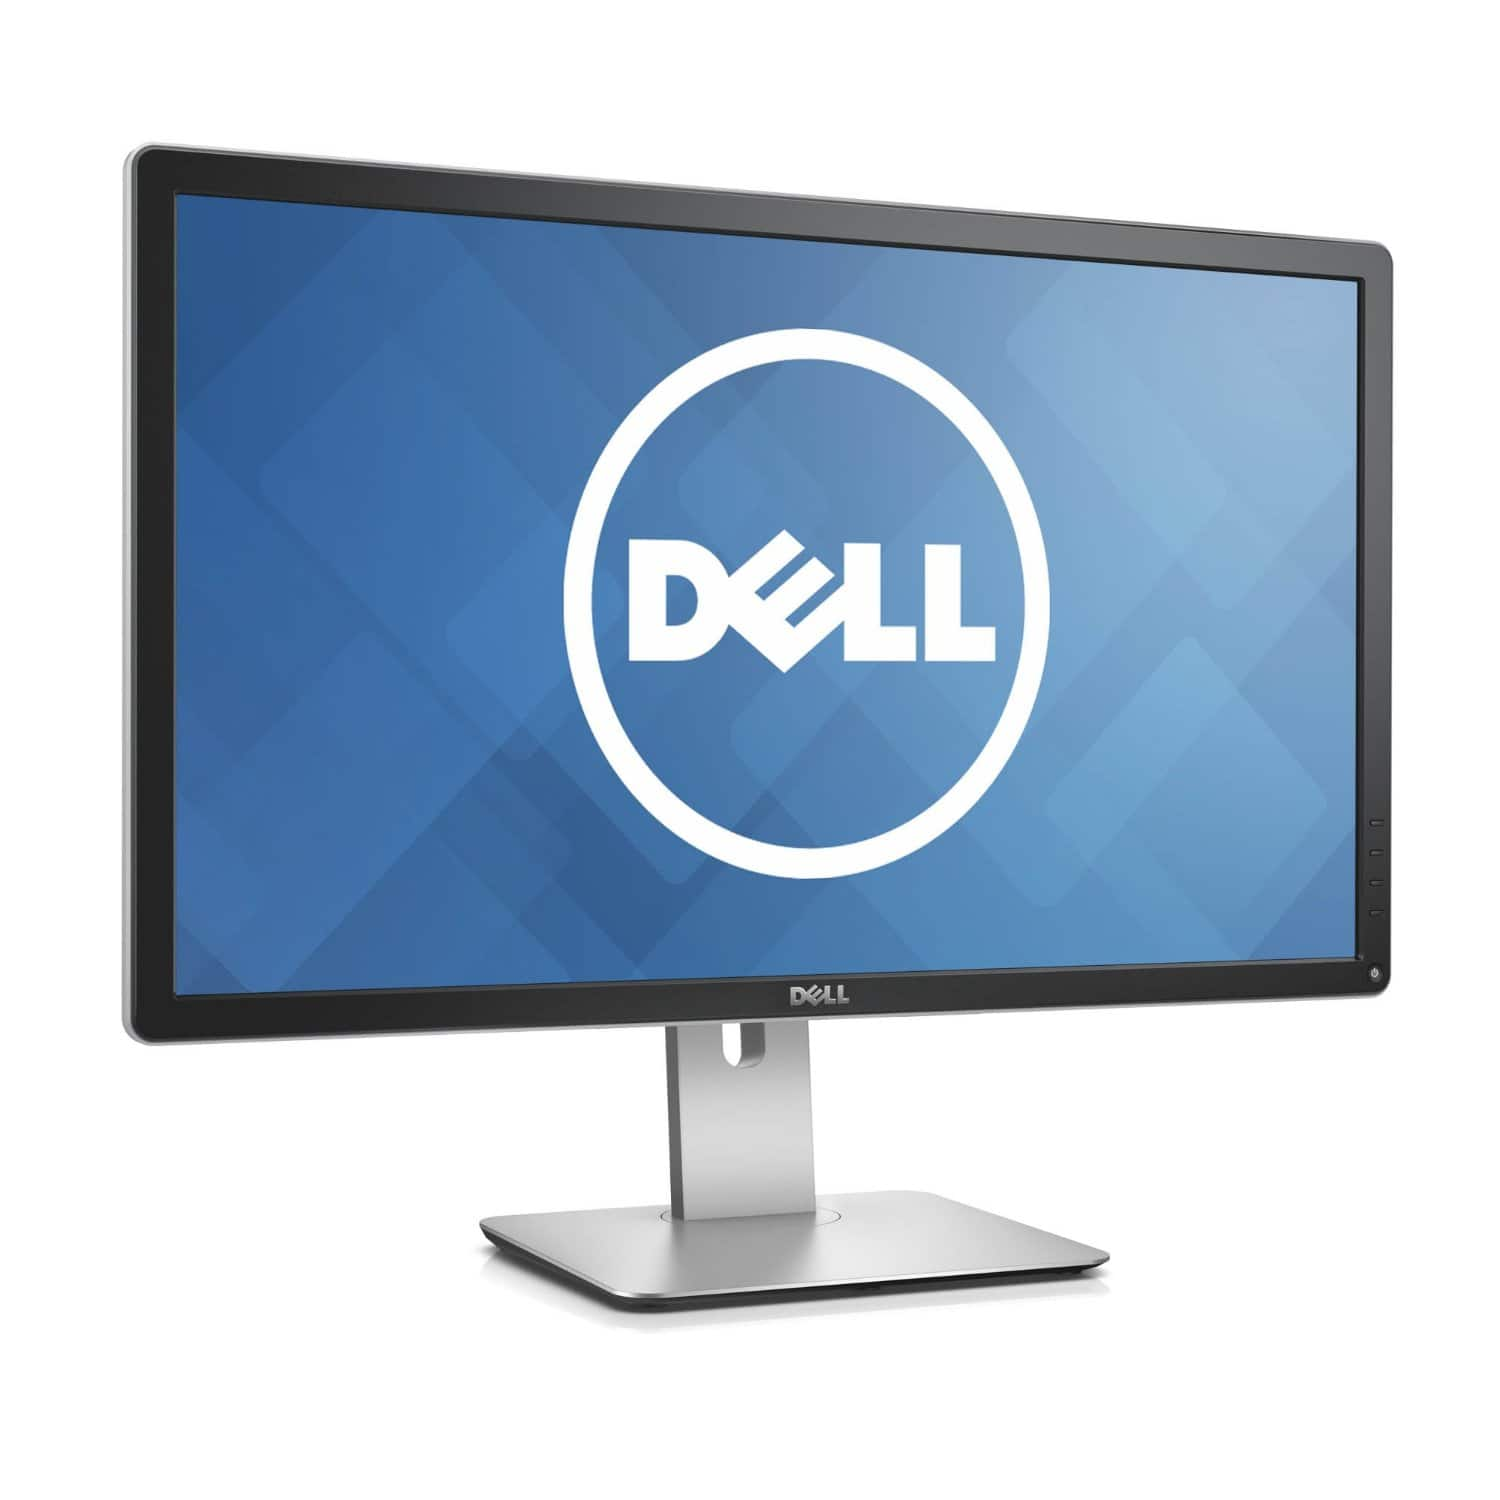 Dell Home Outlet Sale: 30%Off all Monitors (4K @ 60Hz P2715Q $356), 25% Off Venue Tablets, 30% Off Inspiron Laptop/Desktop's, AIO's, 35% Off XPS's + free shipping